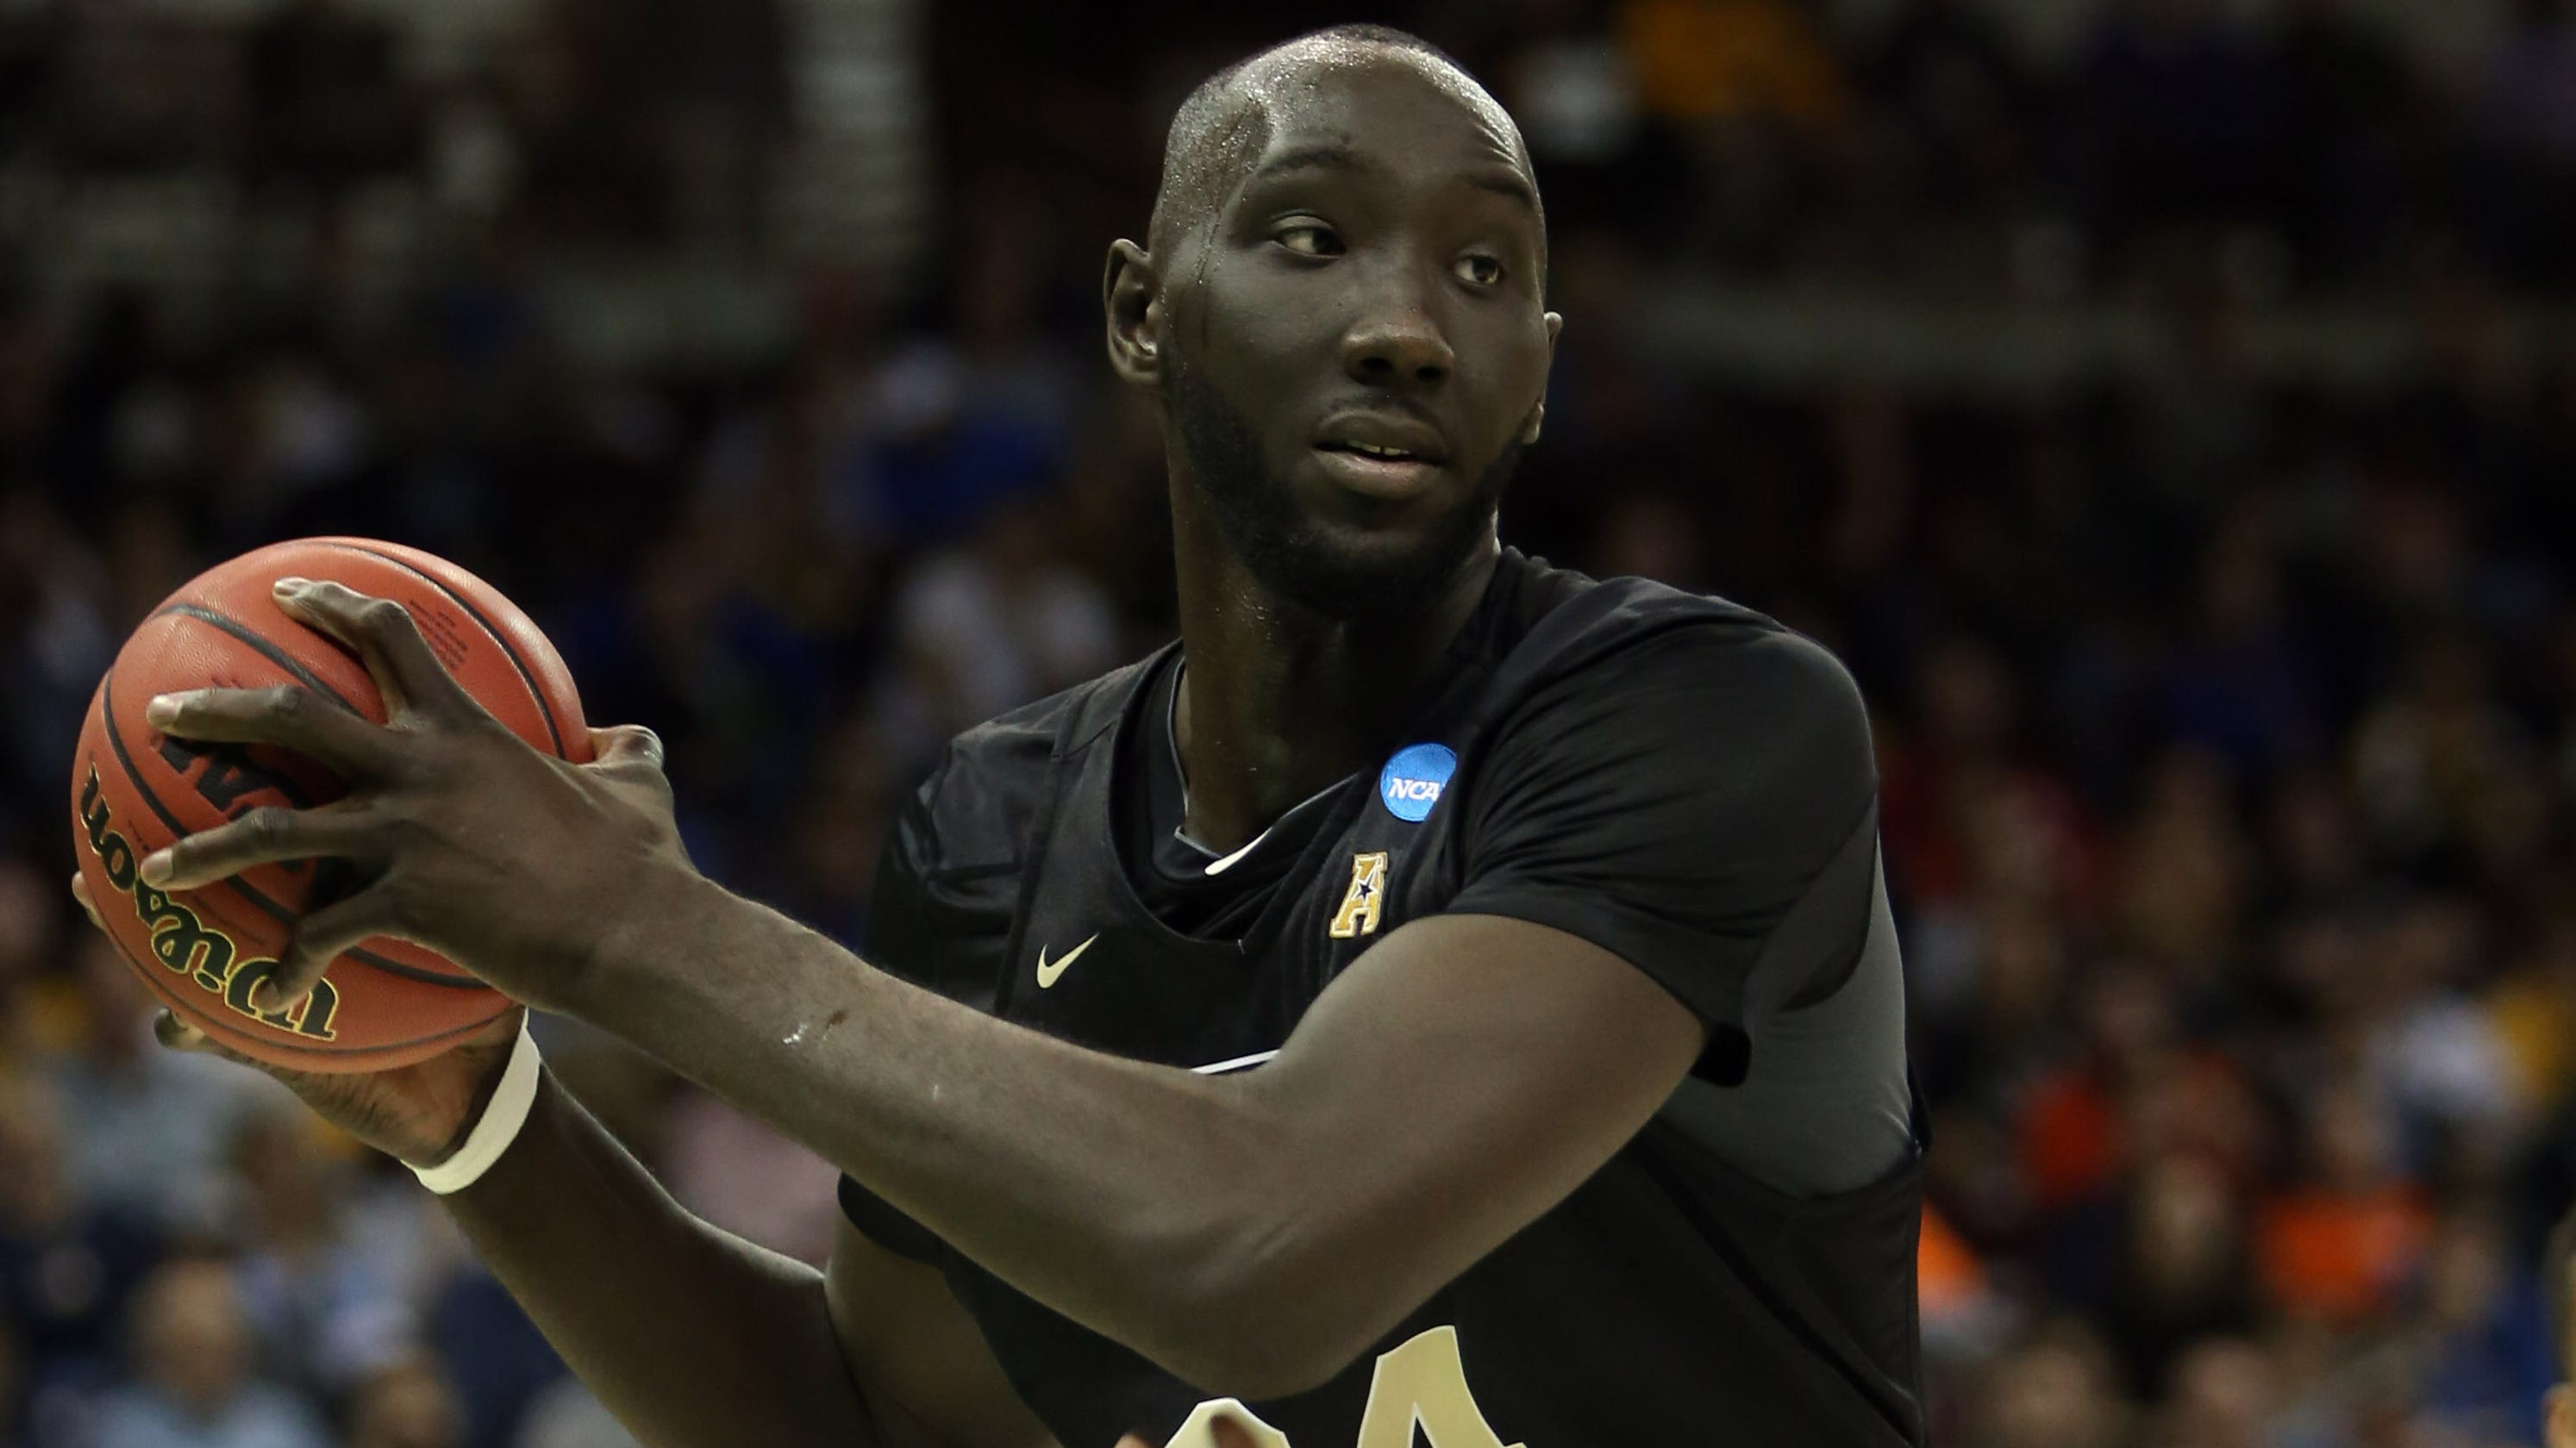 Opinion: Possible confrontation between Zion Williamson and Tacko Fall will be bigger than the game